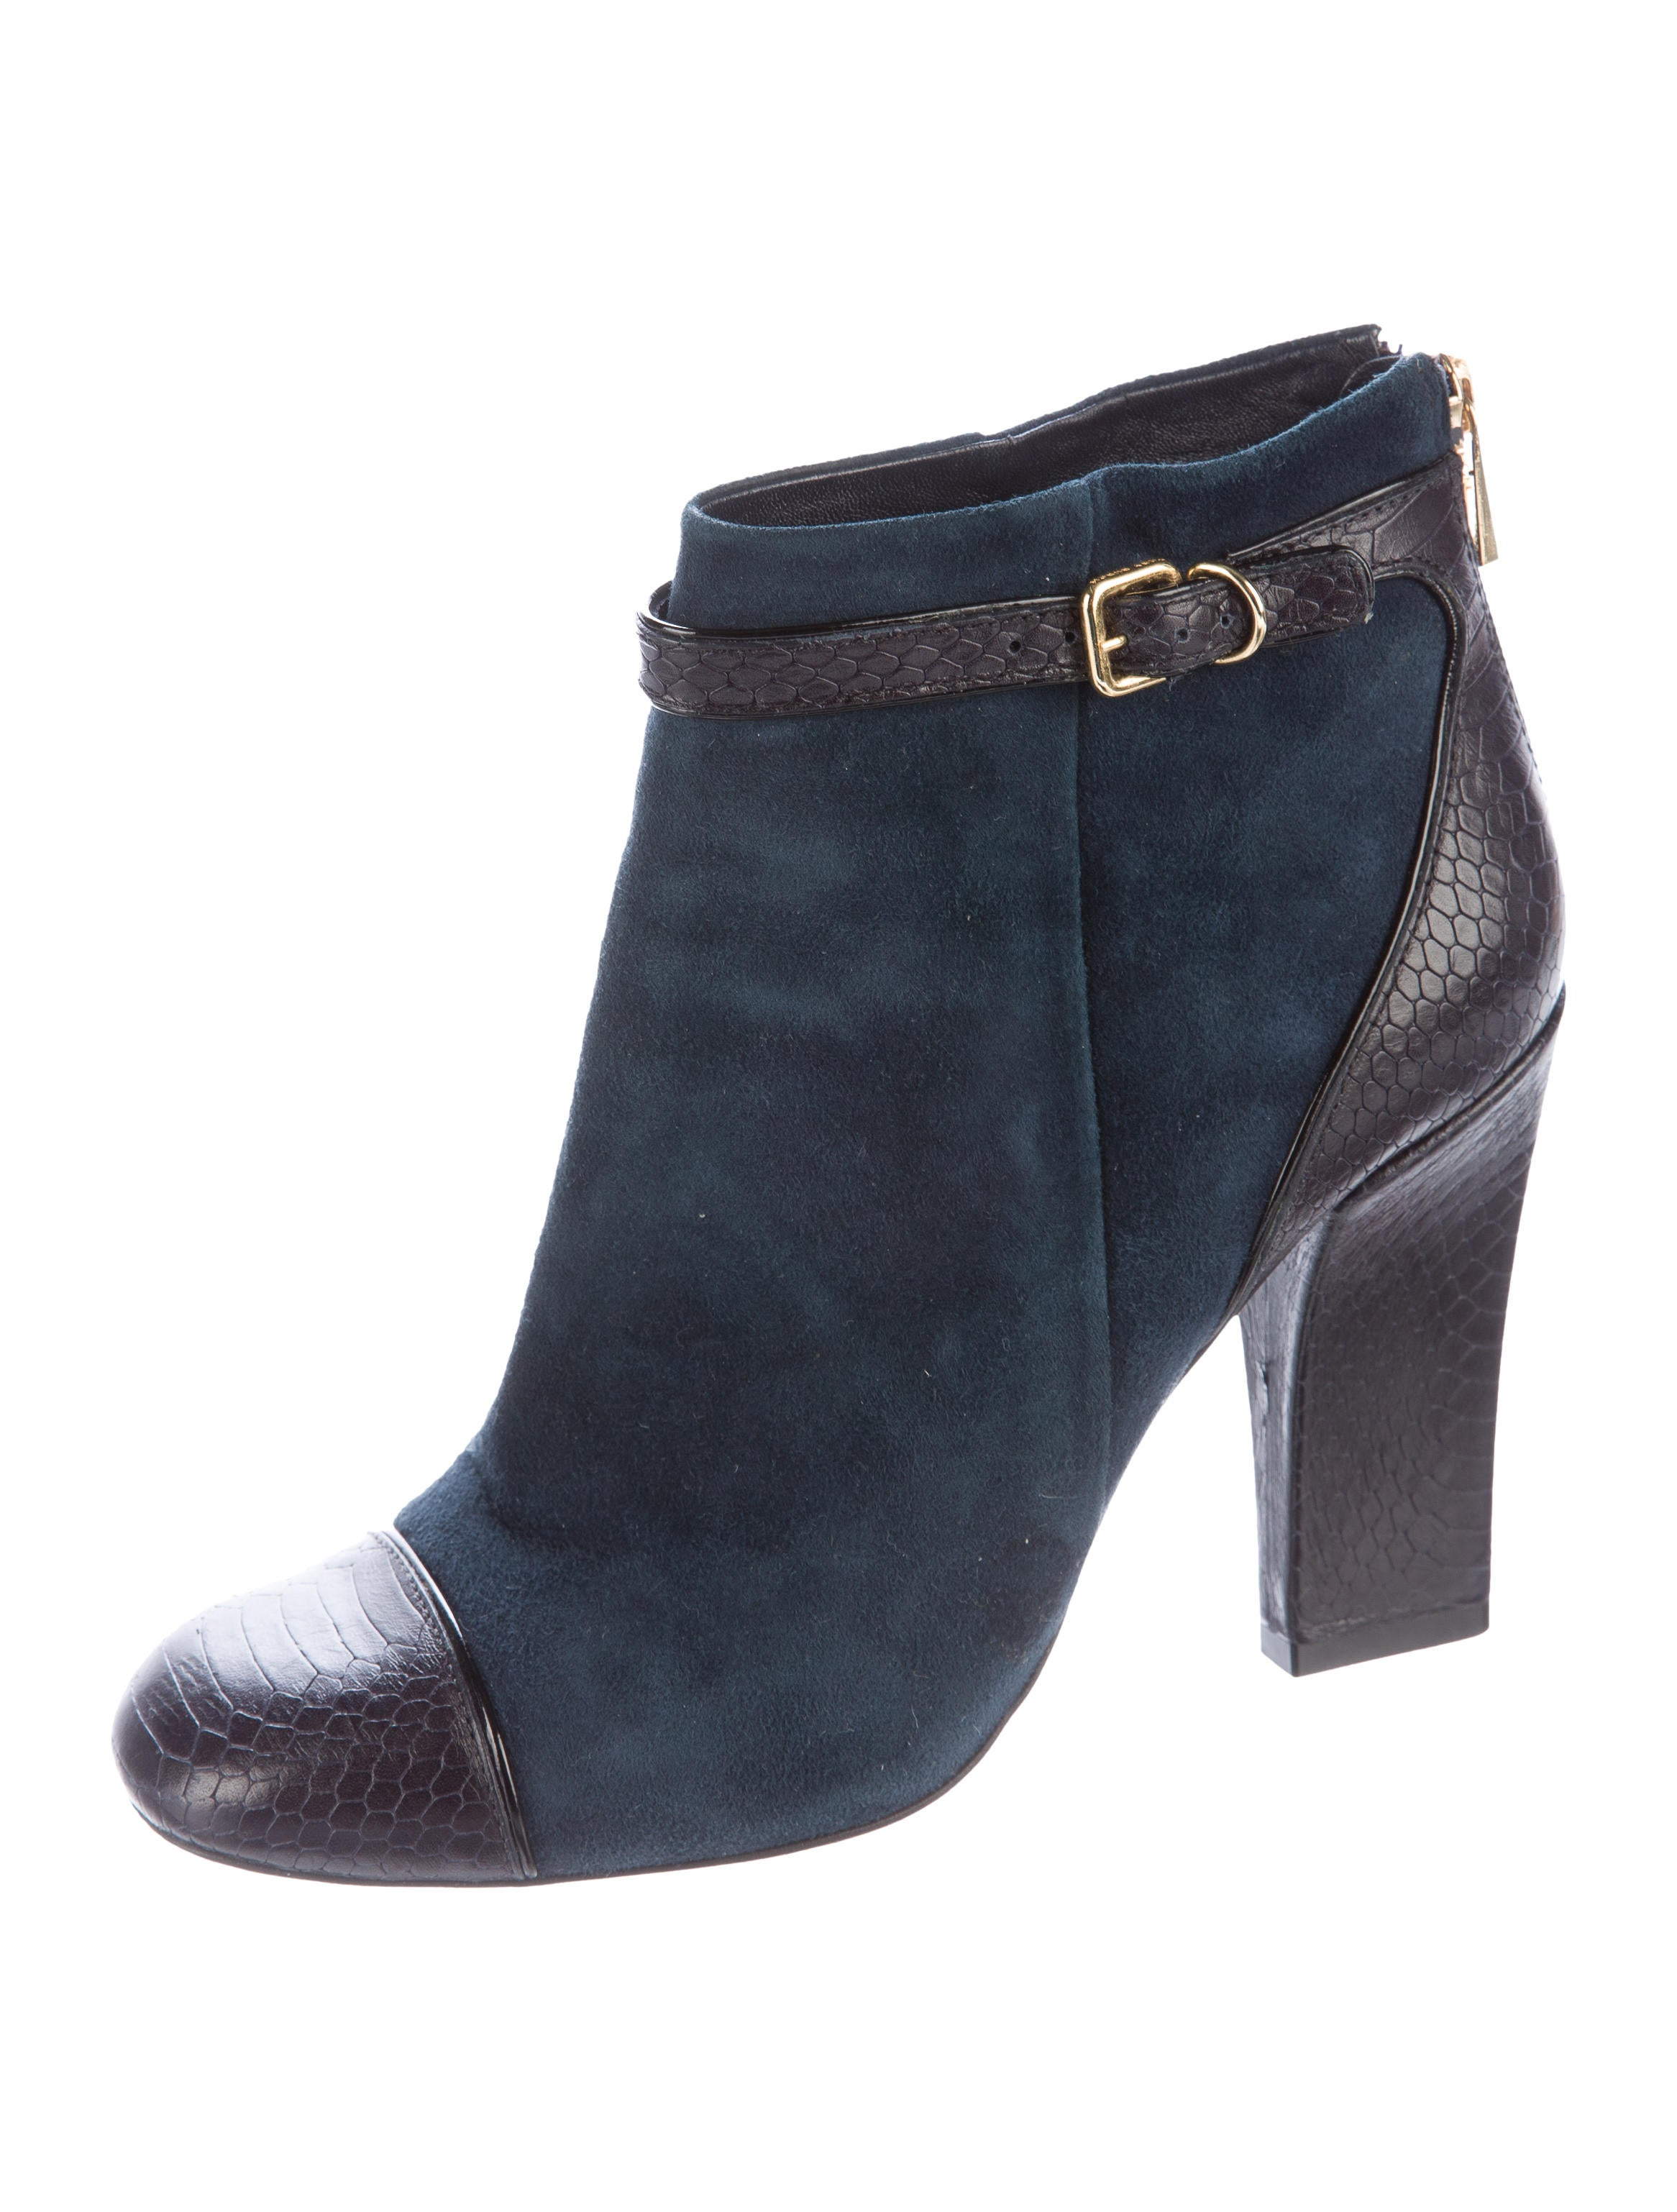 burch suede ankle boots shoes wto84720 the realreal